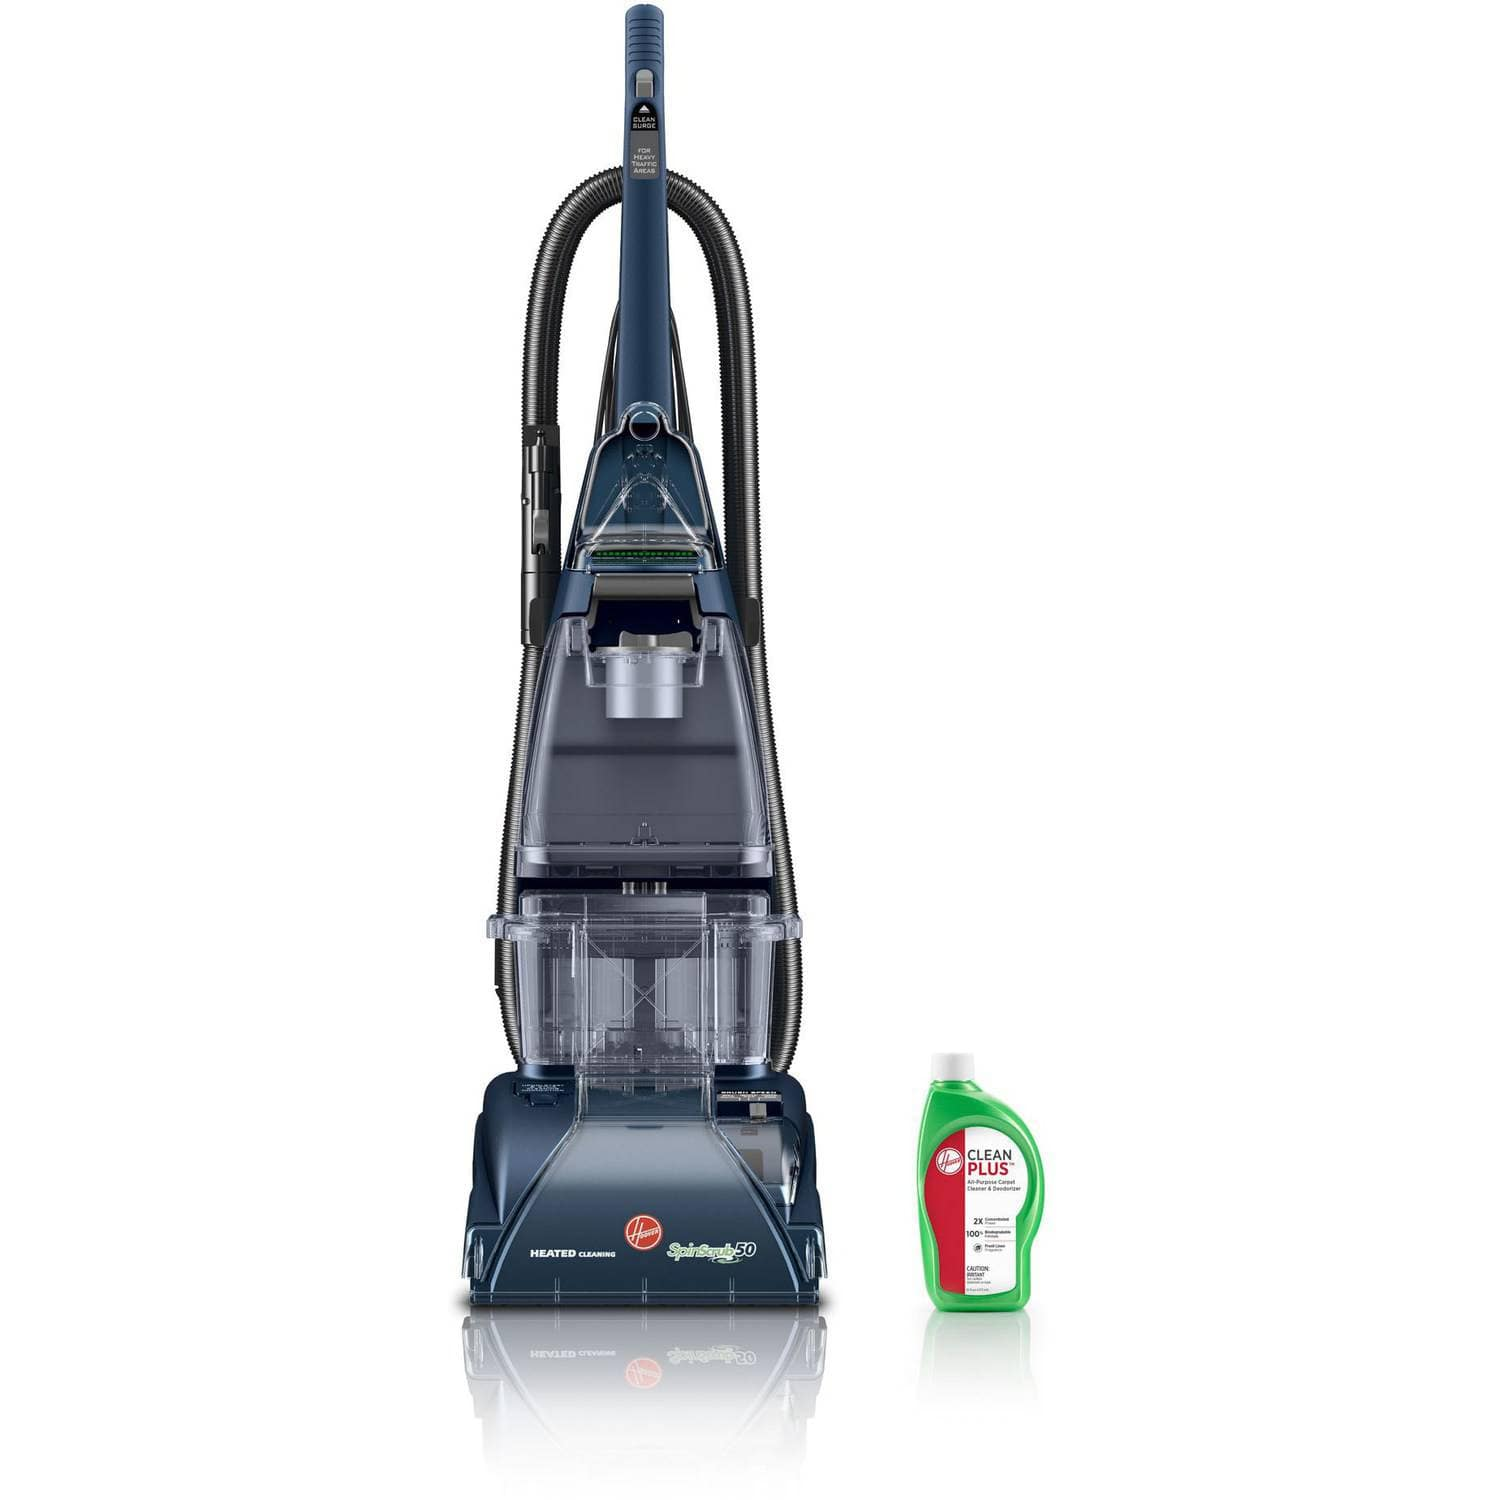 YMMV Hoover SteamVac SpinScrub Carpet Cleaner $33 Wal Mart in store